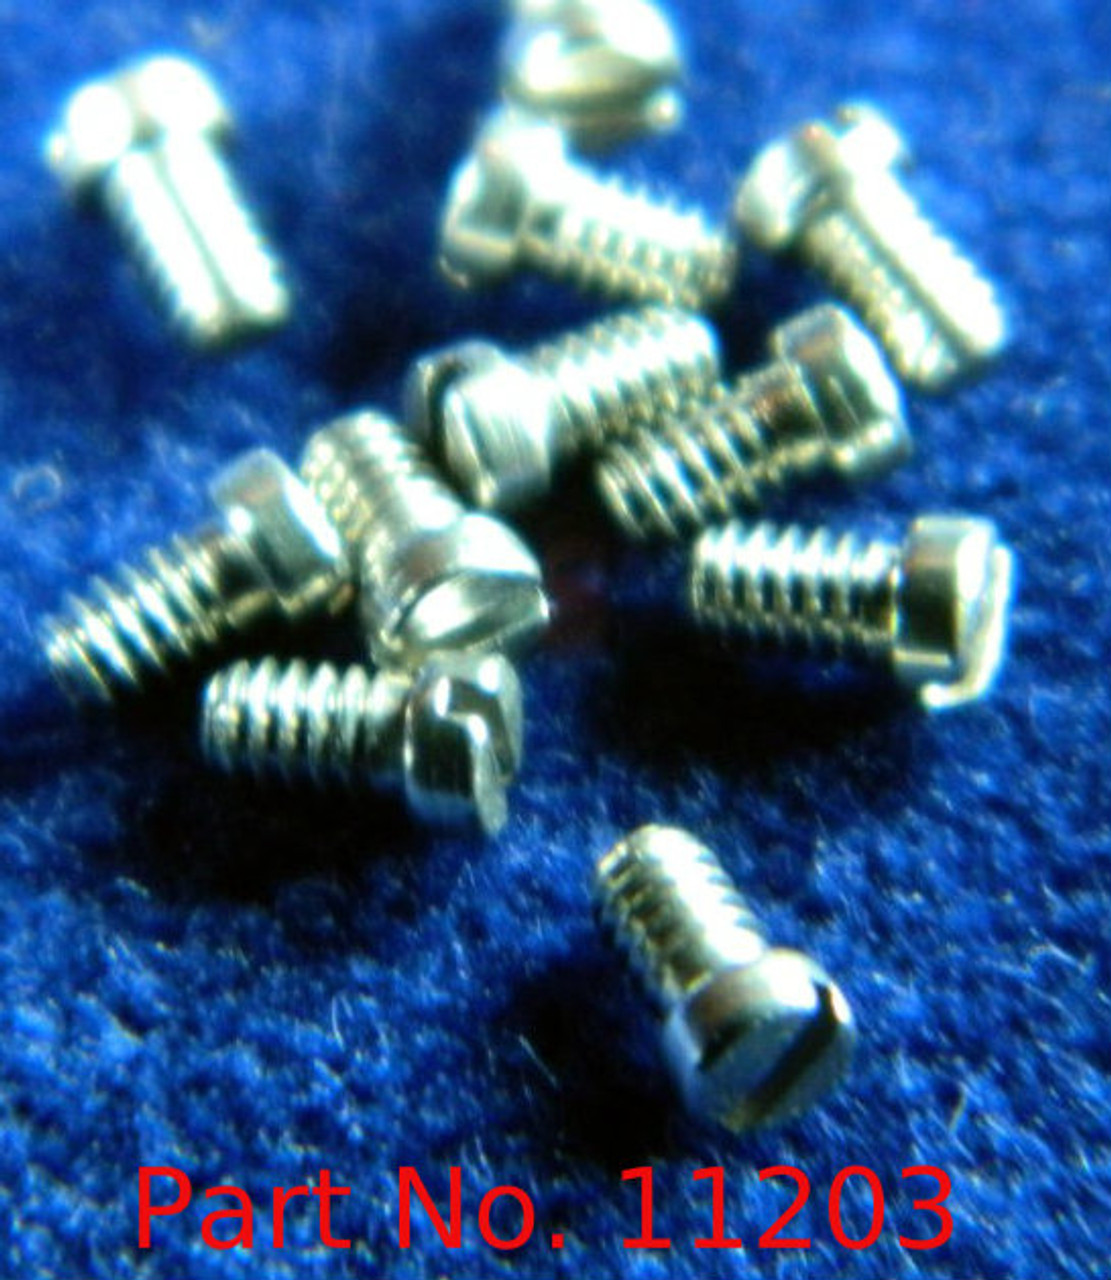 """Machine Screw Special, Small Head, Thread M1.4 (1.40UNM) Pitch .30mm Head Diameter 1.9mm Threaded Length (Shank) 2.5mm / 0.100"""" Max Overall Length (OAL) 3.0mm Material Stainless Steel, Finish Color """"Silver"""" Made on precision screw machines. Price is for 100 count package"""